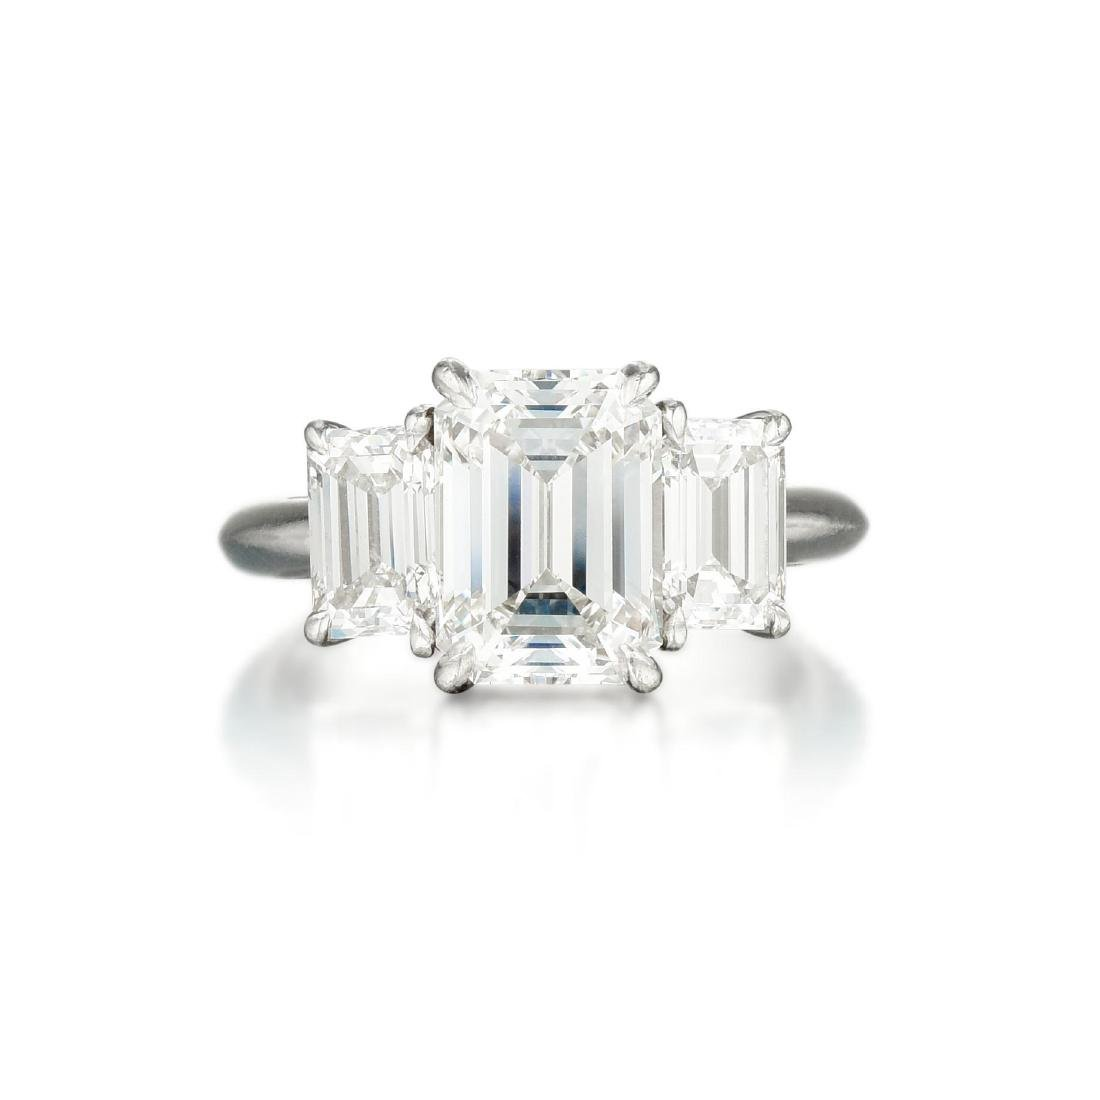 A Three-Stone Diamond Ring, 4.10 CTW